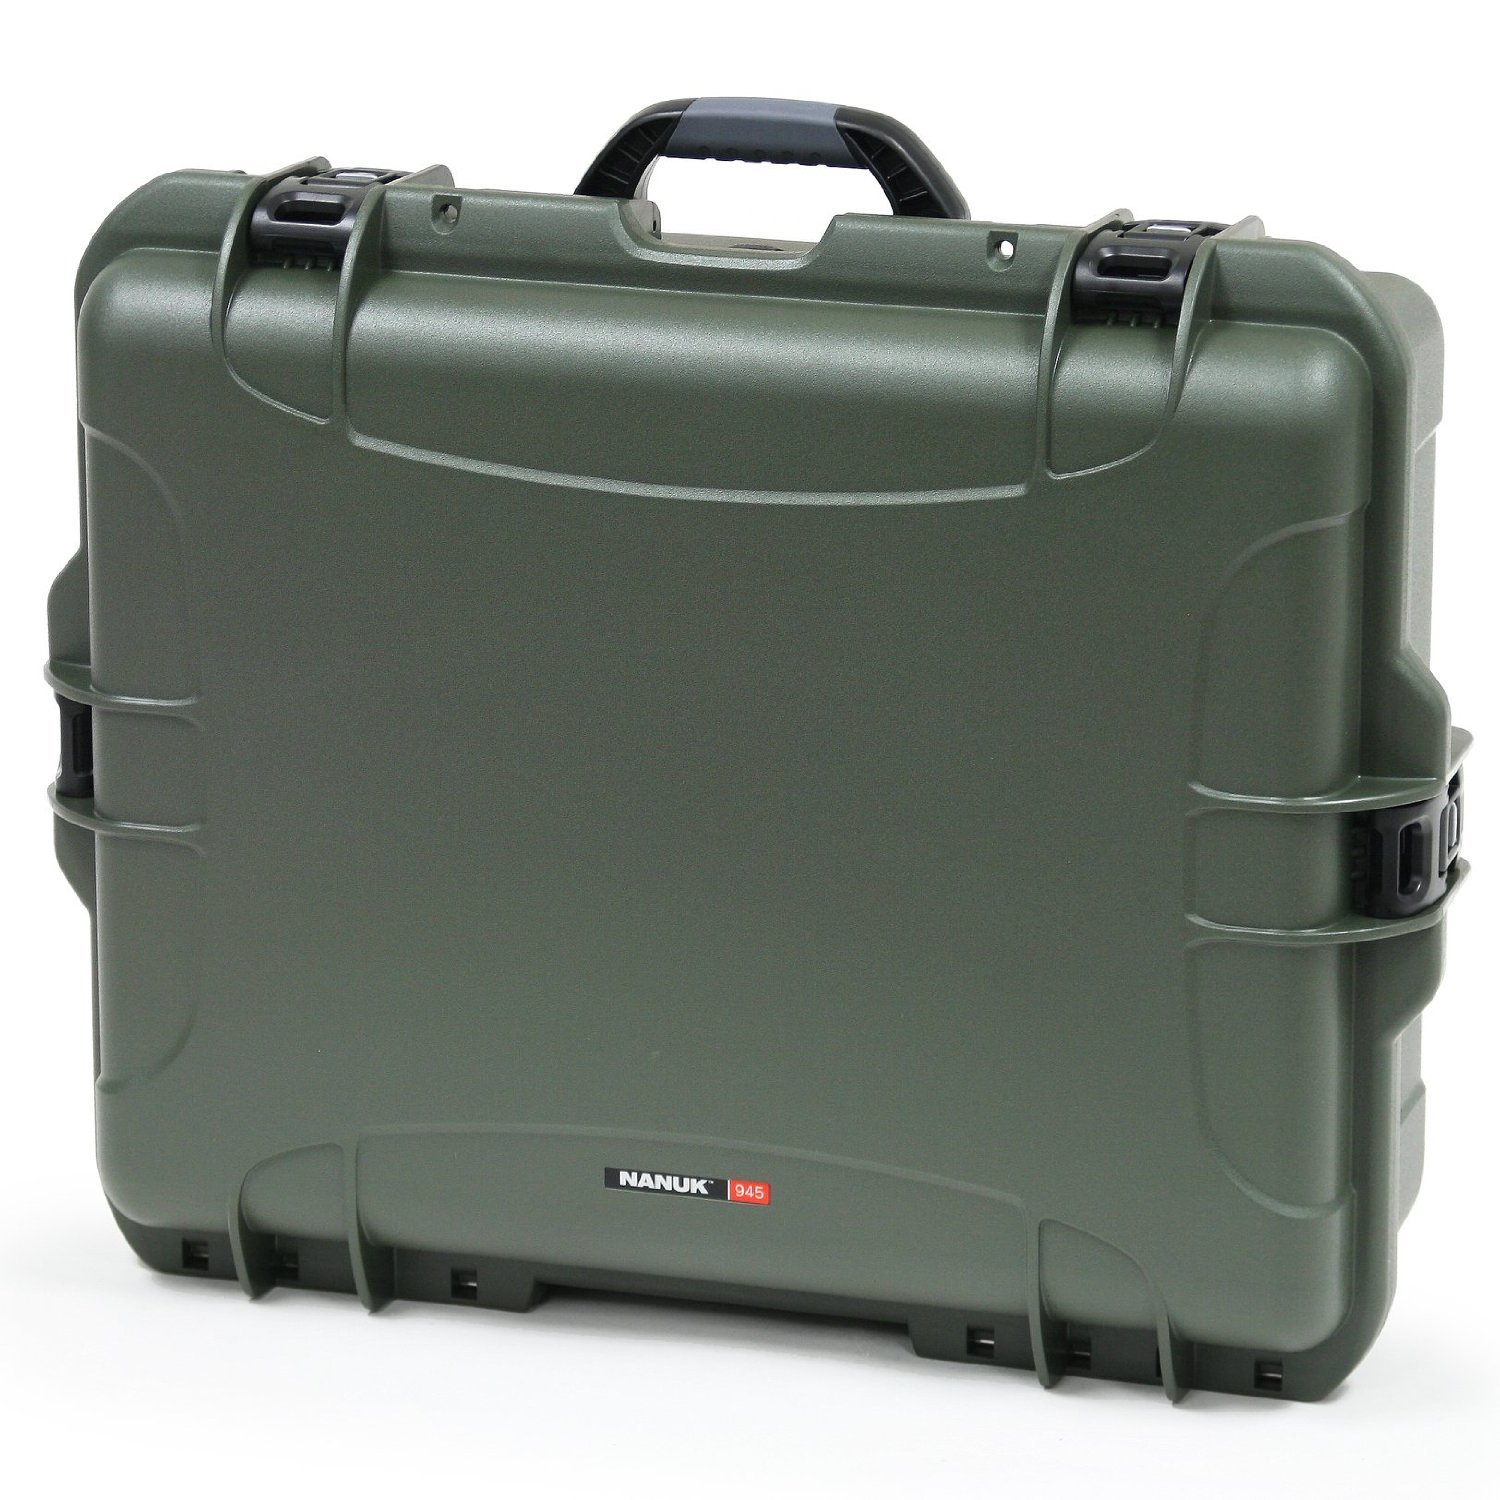 Nanuk 945 Case with Padded Divider (Olive) [並行輸入品] B019SZ7BE0